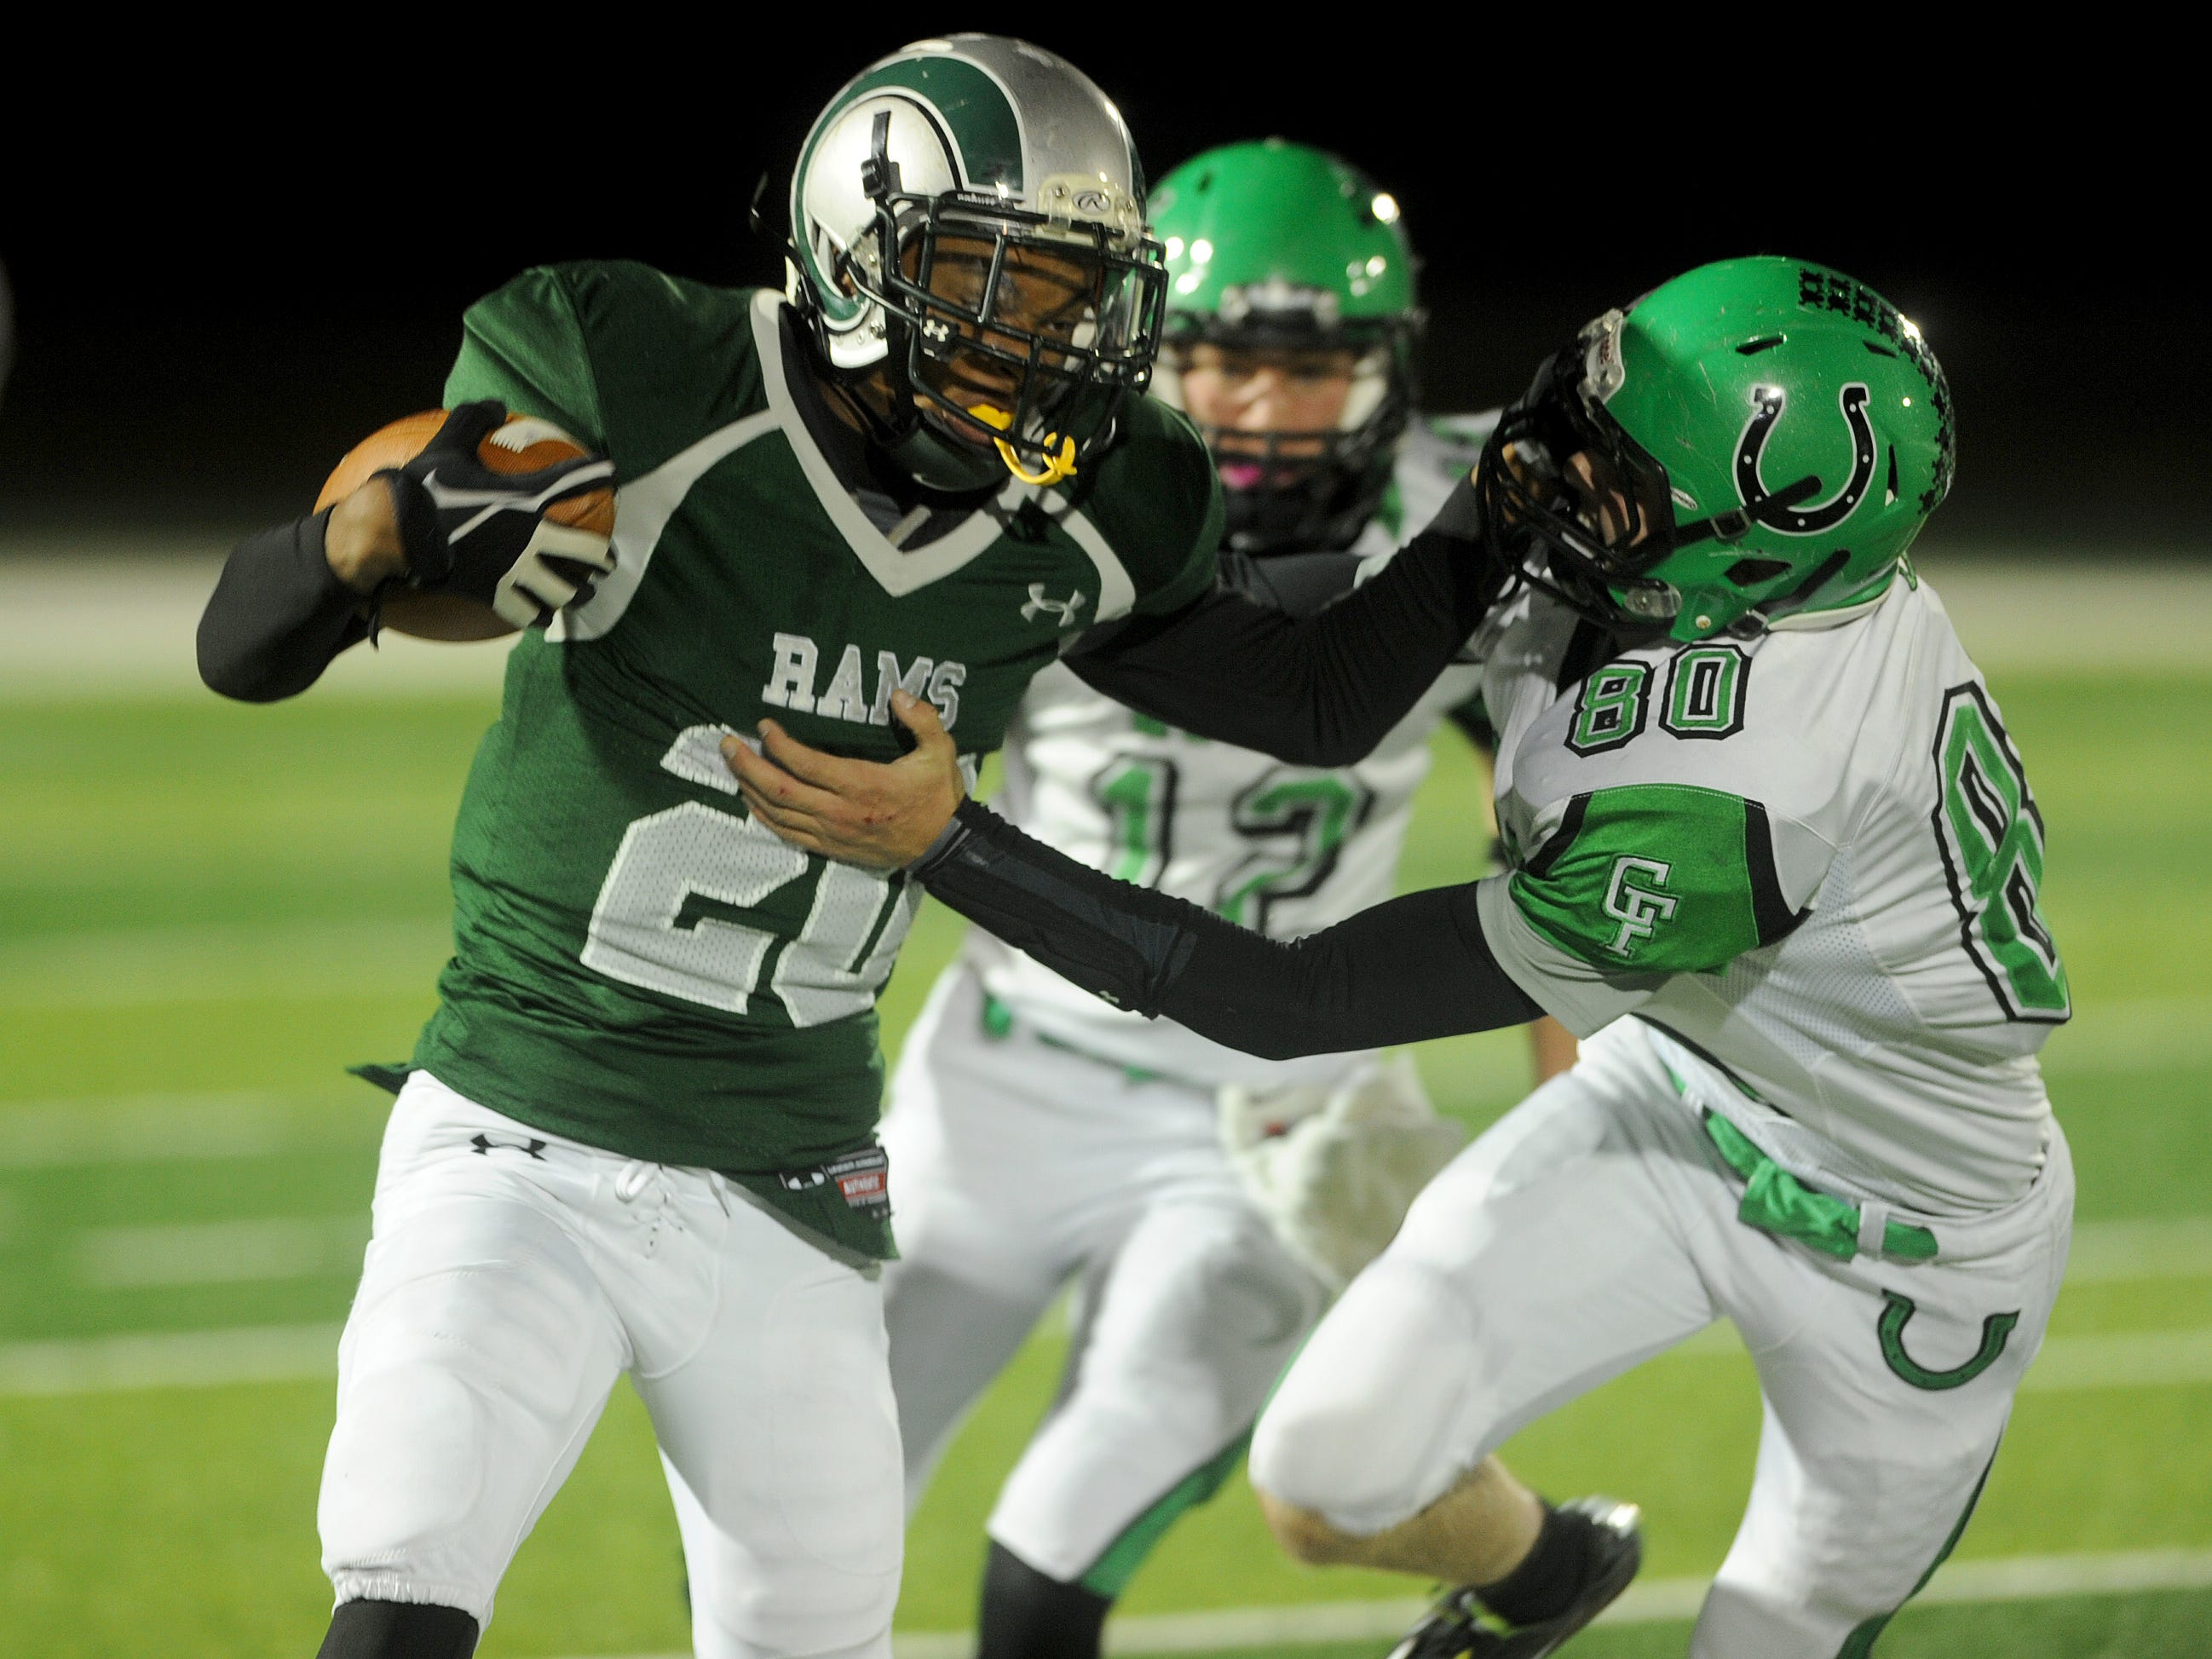 """Madison's Juwan Howard fights off the tackle of Clear Fork's Nate Hosey in a game last season. Howard is already an all-star """"vet,"""" having scored a touchdown in the big school state contest."""